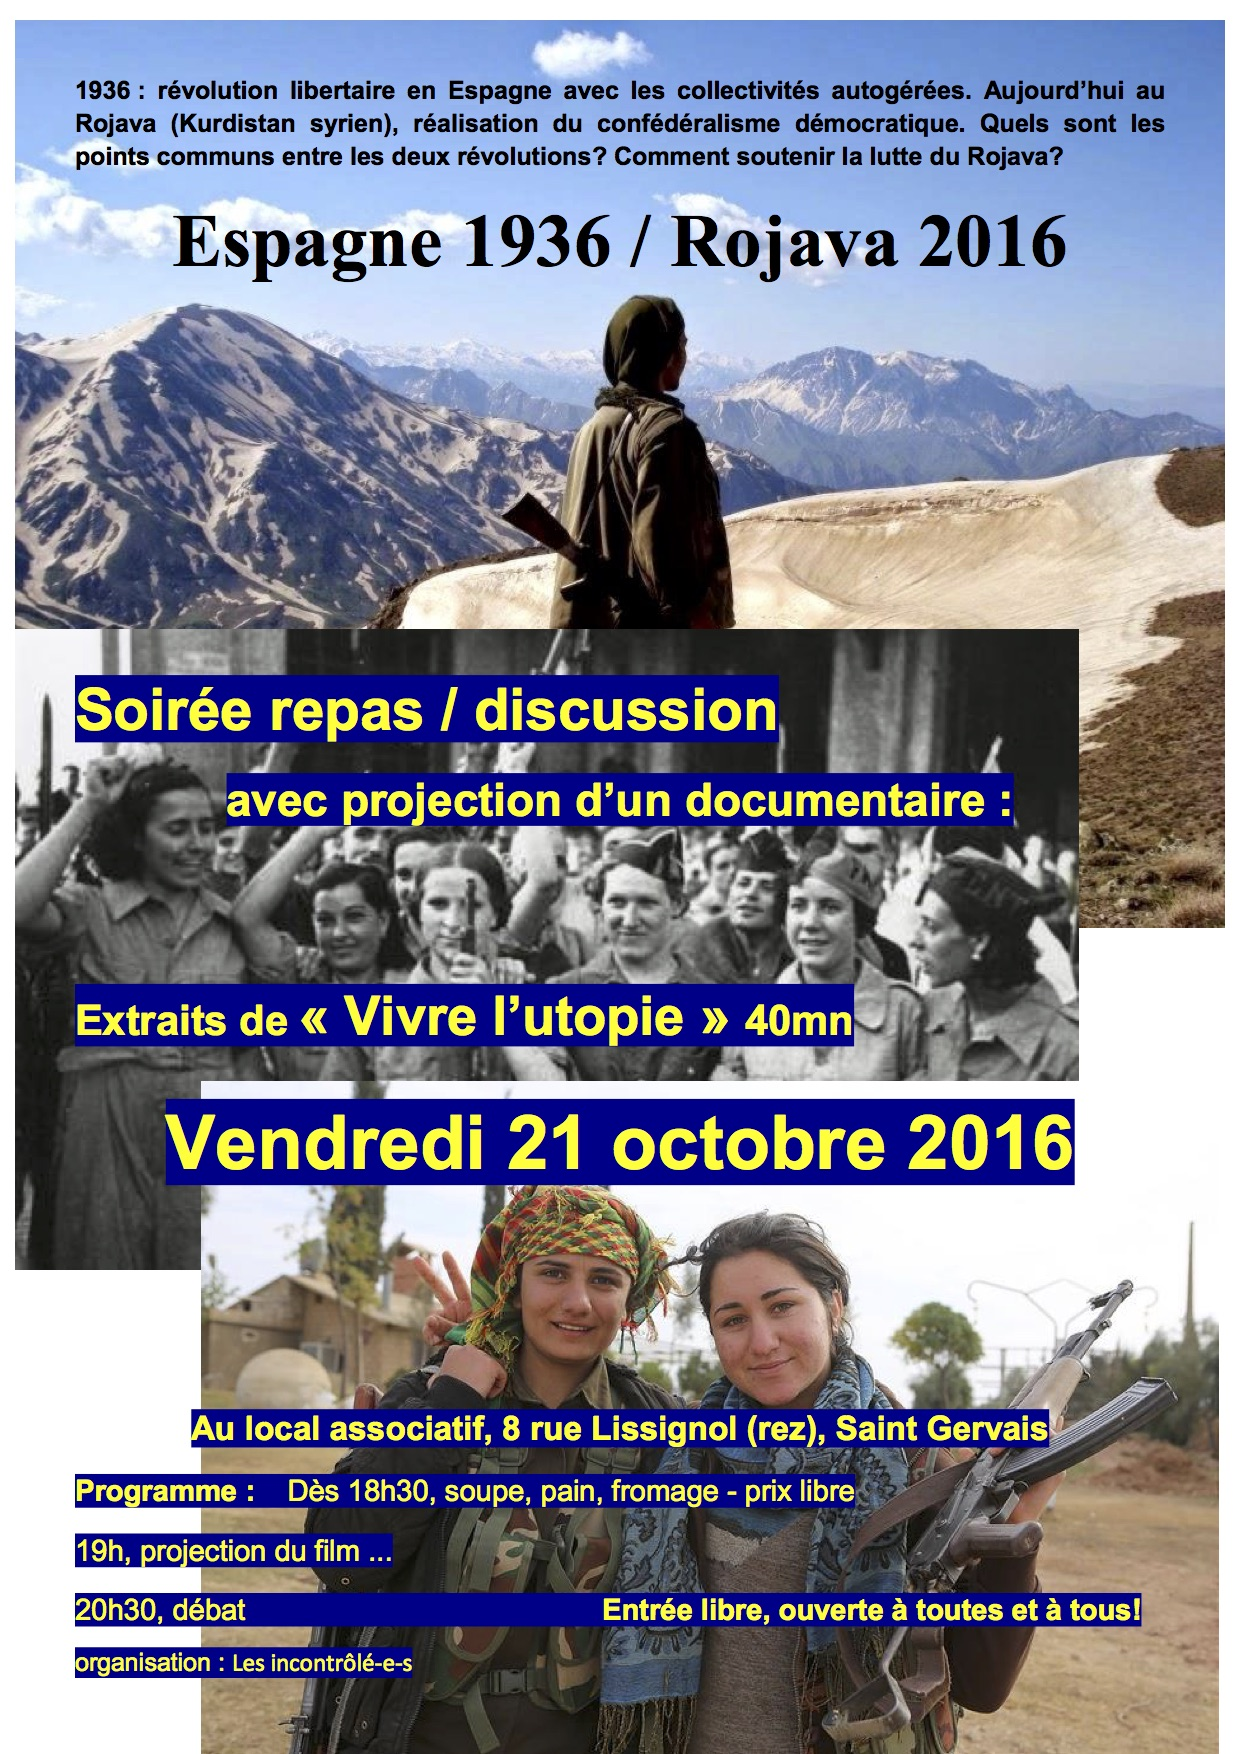 soiree-repas-discussion-21-octobre